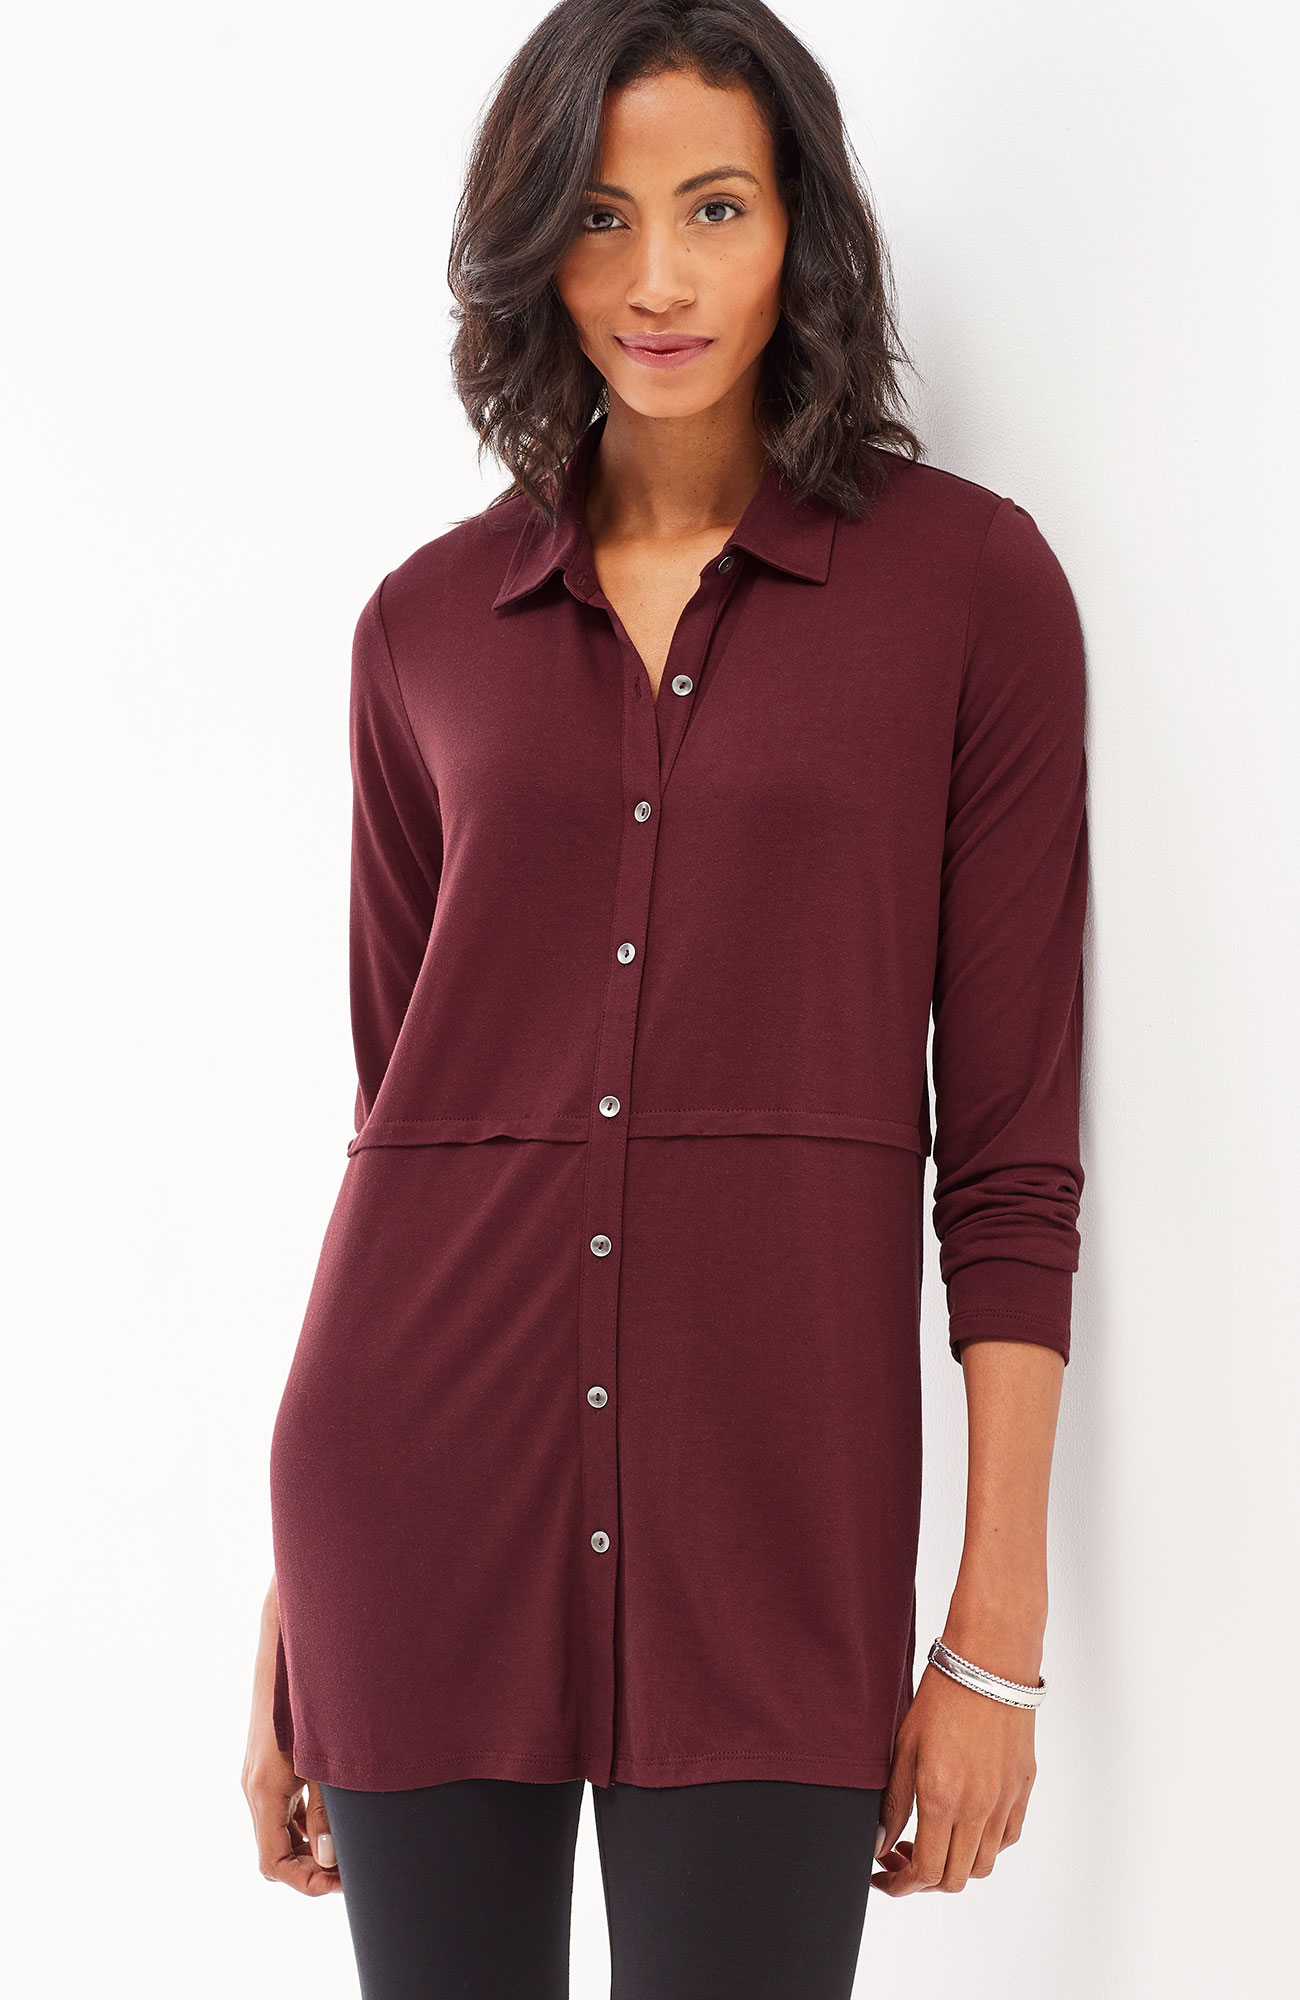 button-front knit tunic